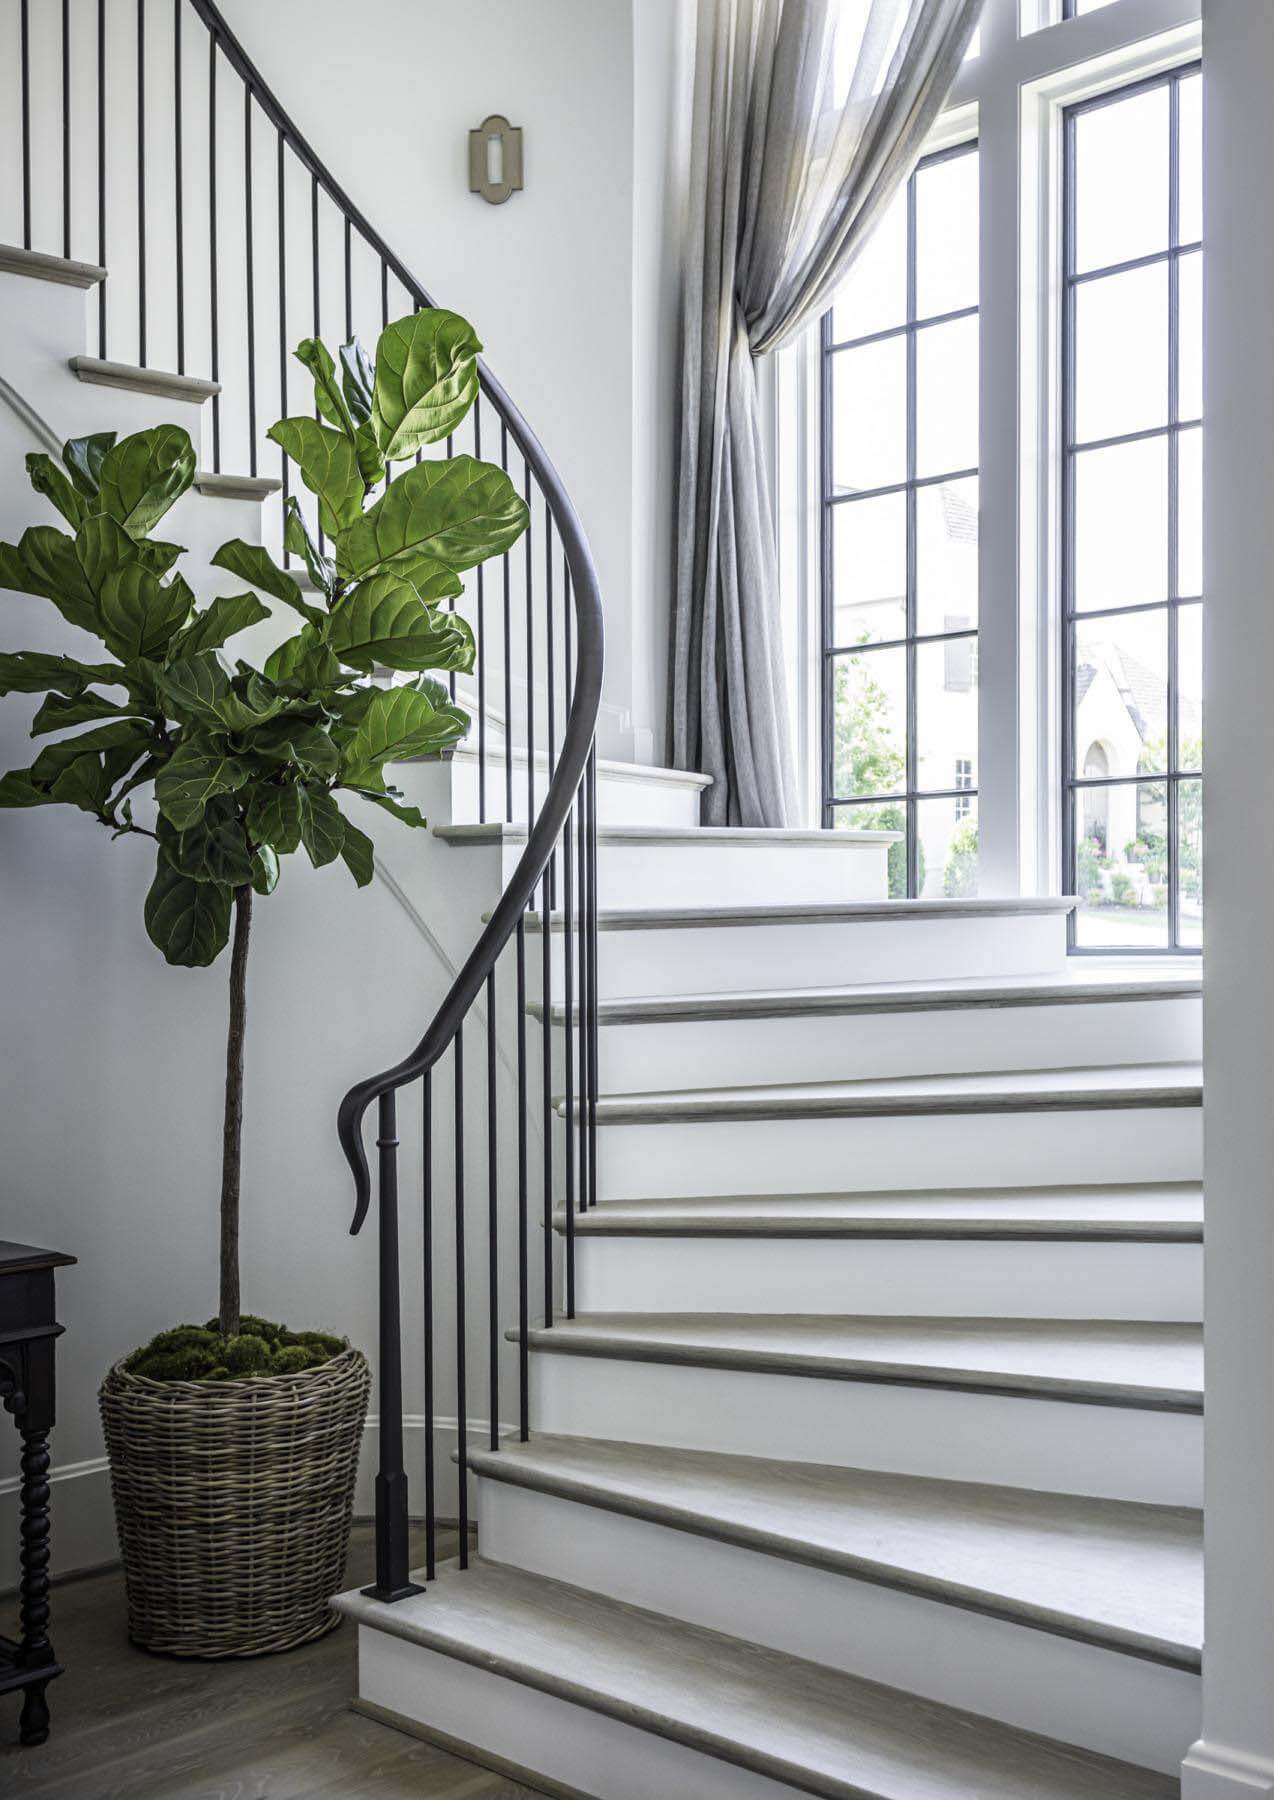 Stairwell to second floor at Alan and Heather Looney's home